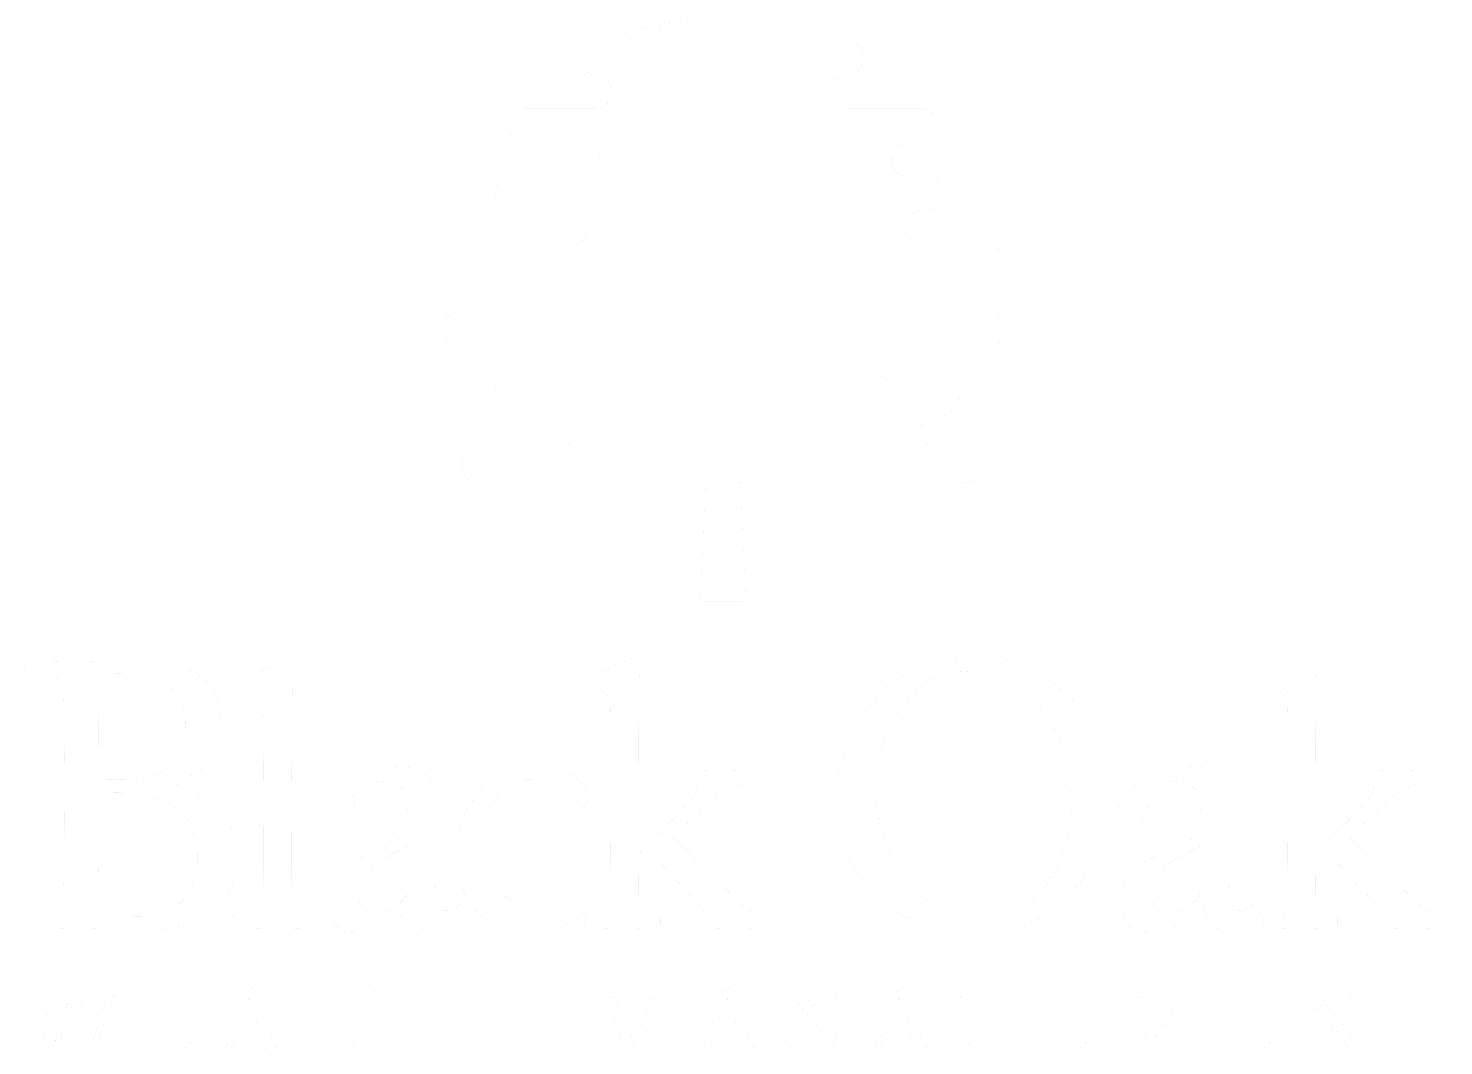 Financial Advisor | Phillip Hanks, CFP® | Black Oak Wealth Management | Investment Management & Financial Planning